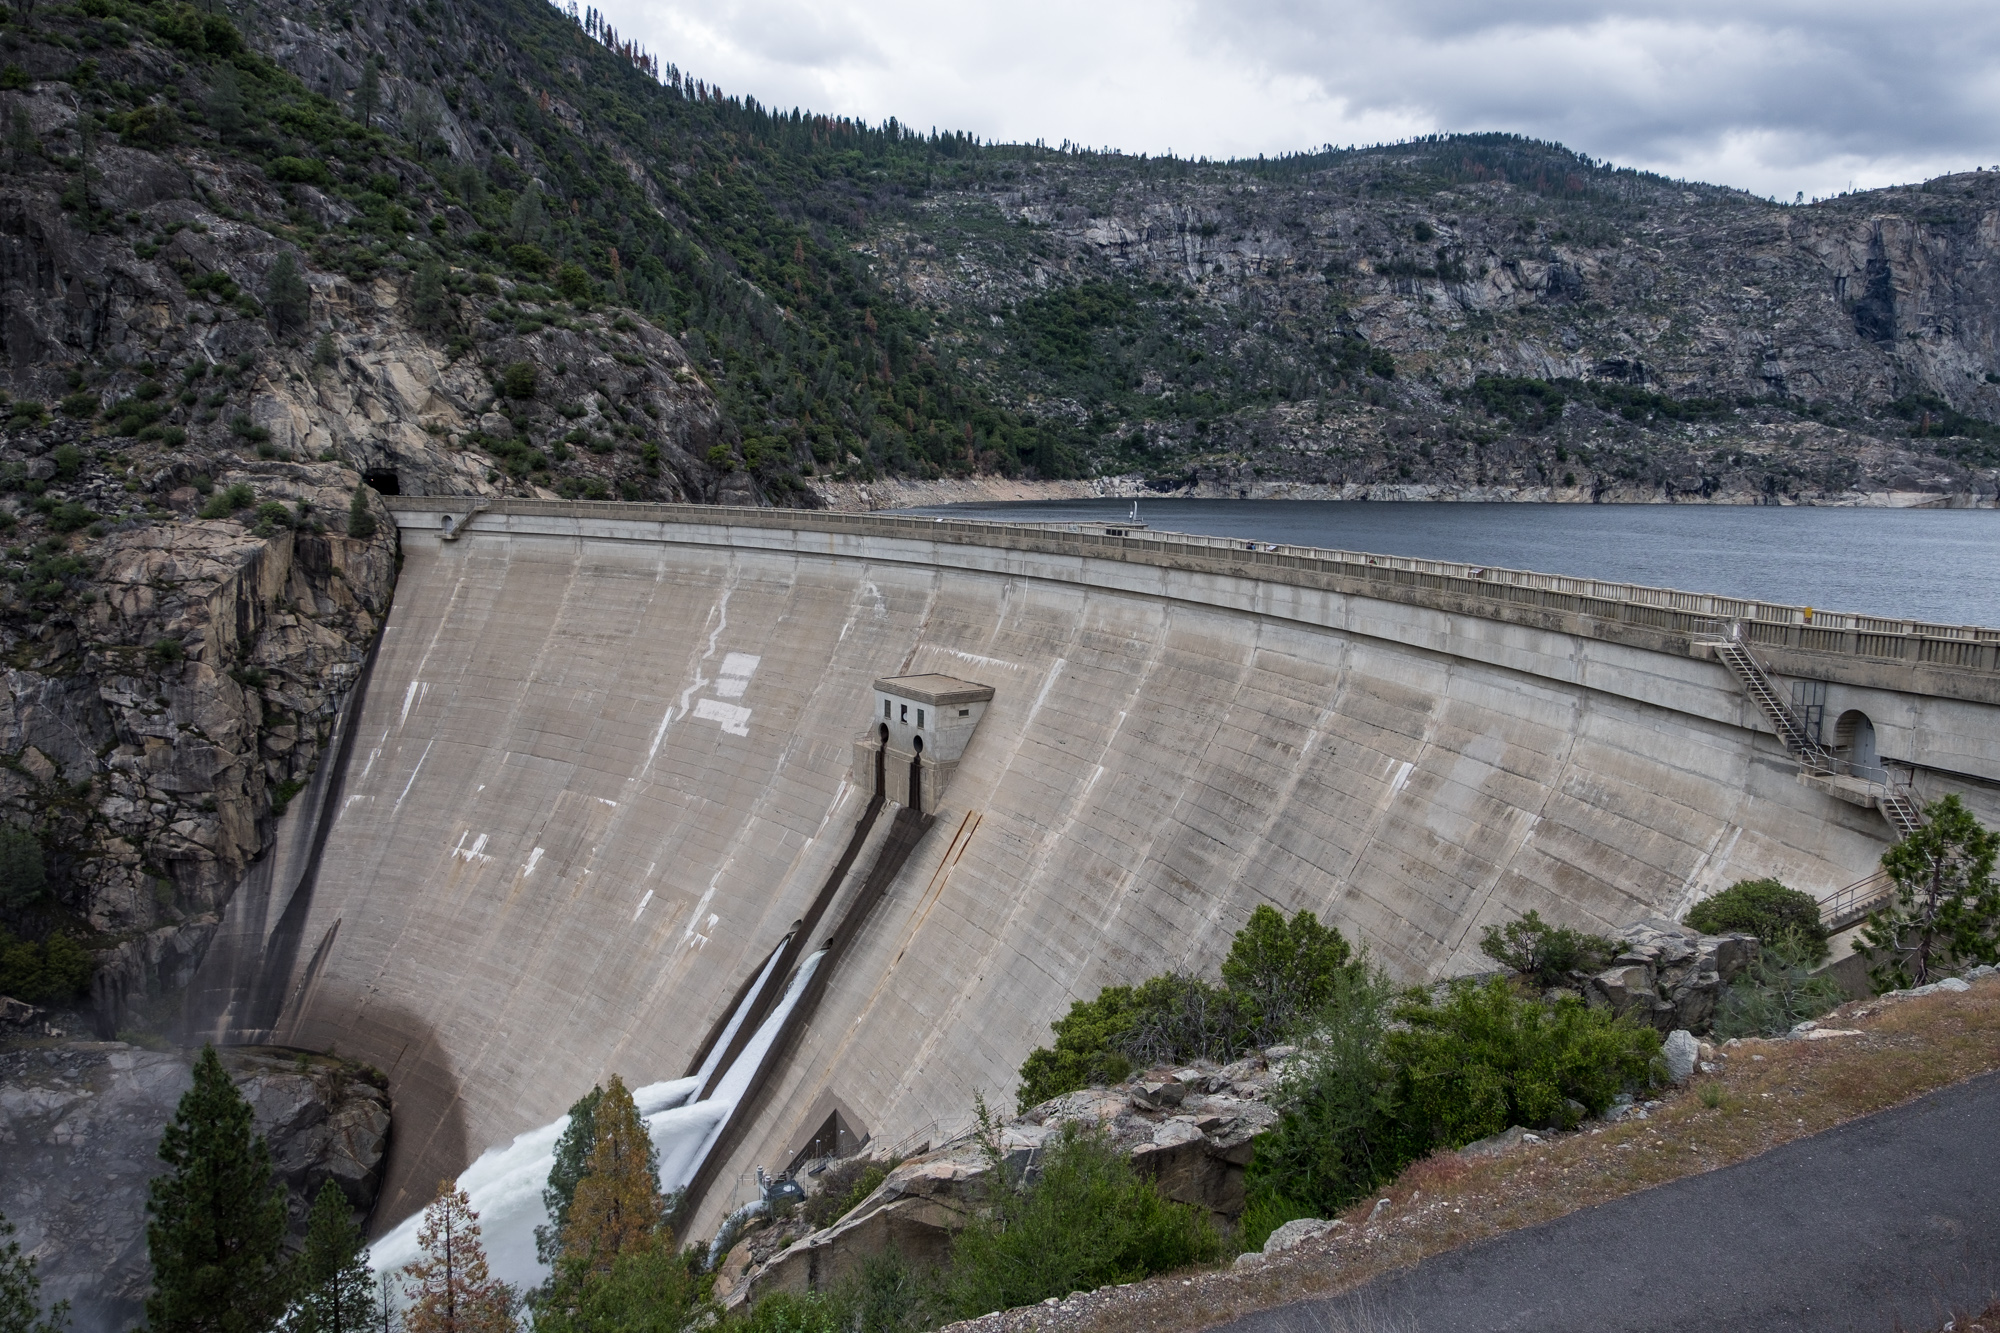 This is the dam that has flooded the Hetch Hetchy Valley for the city of San Francisco's water usage.